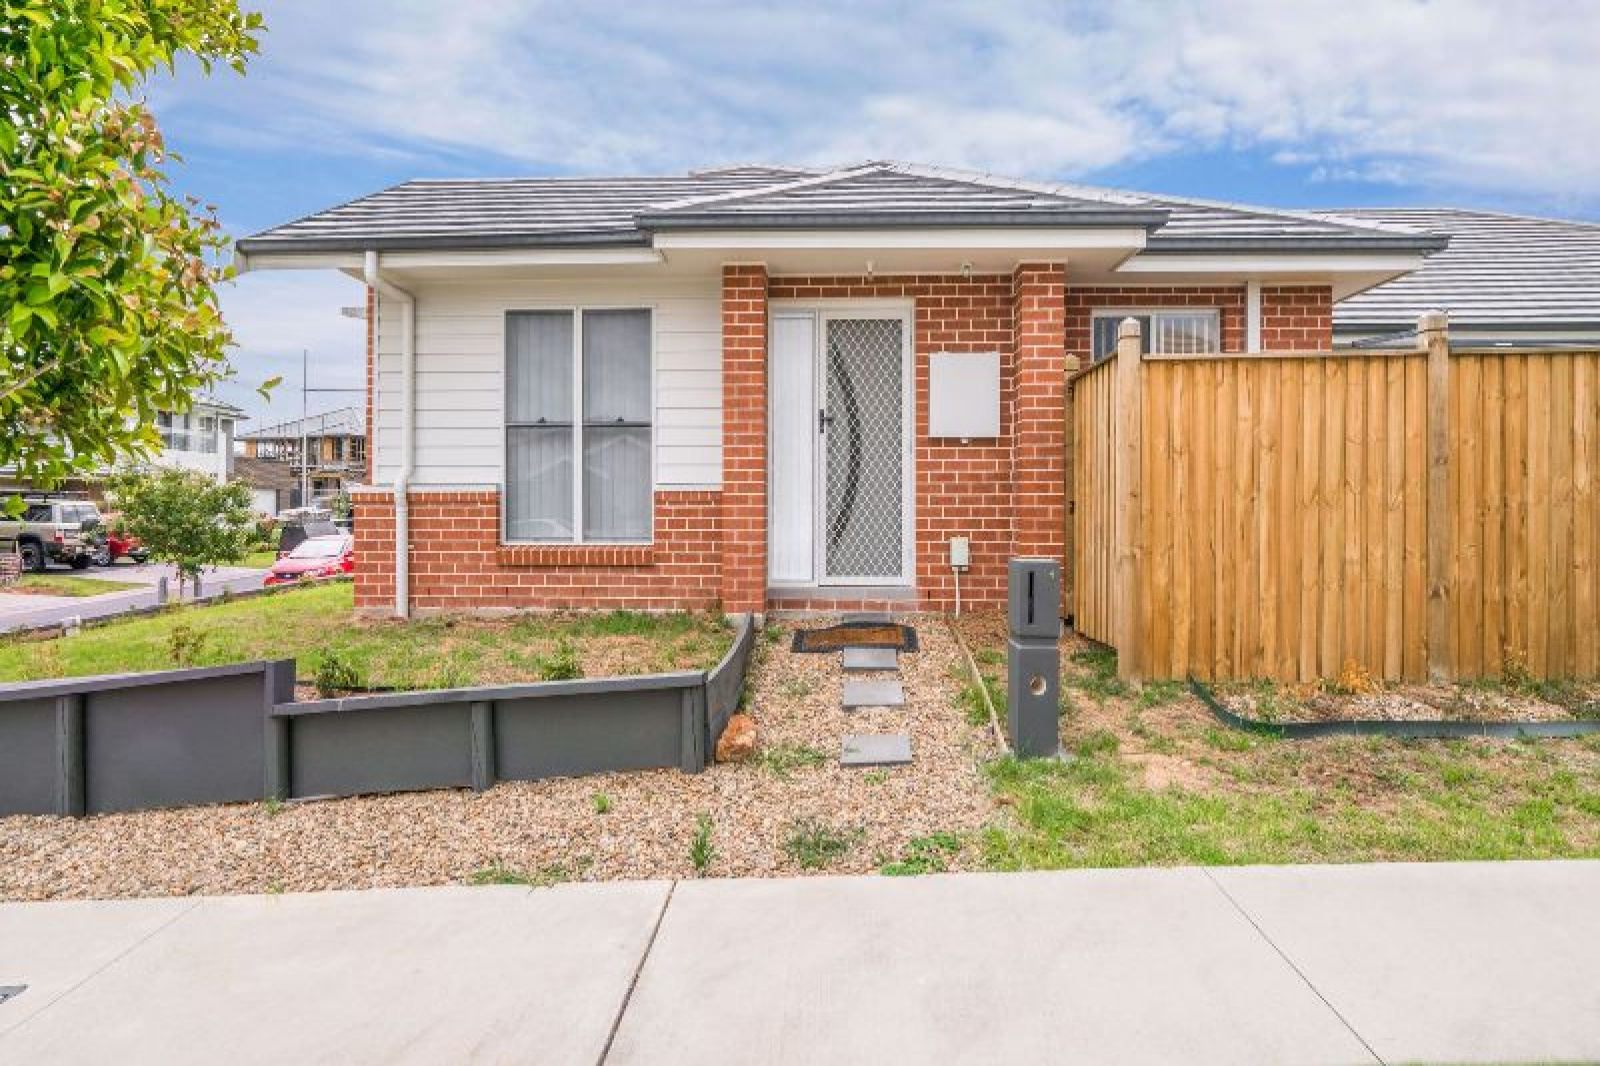 2a Bowe Place,Oran Park,NSW,1 Bedroom Bedrooms,1 BathroomBathrooms,House,Bowe Place,1283